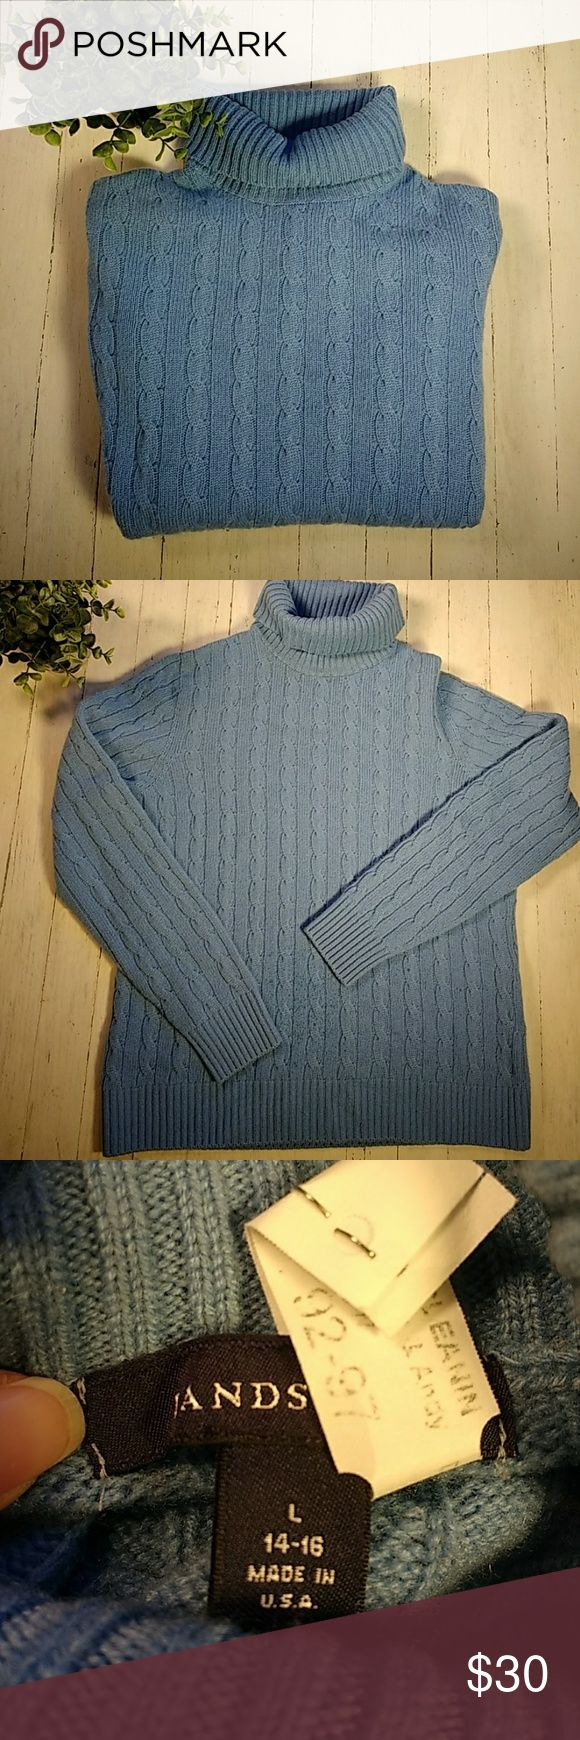 """Cashmere Land's End turtleneck sweater Gorgeous and so soft, this medium blue sweater has only been dry cleaned, still has ticket attached. Fantastic condition, no pilling or pulls. Measured flat: 25"""" shoulder hem to bottom front hem 21.5"""" armpit to armpit 18.5"""" armpit to sleeve hem Lands' End Sweaters Cowl & Turtlenecks"""